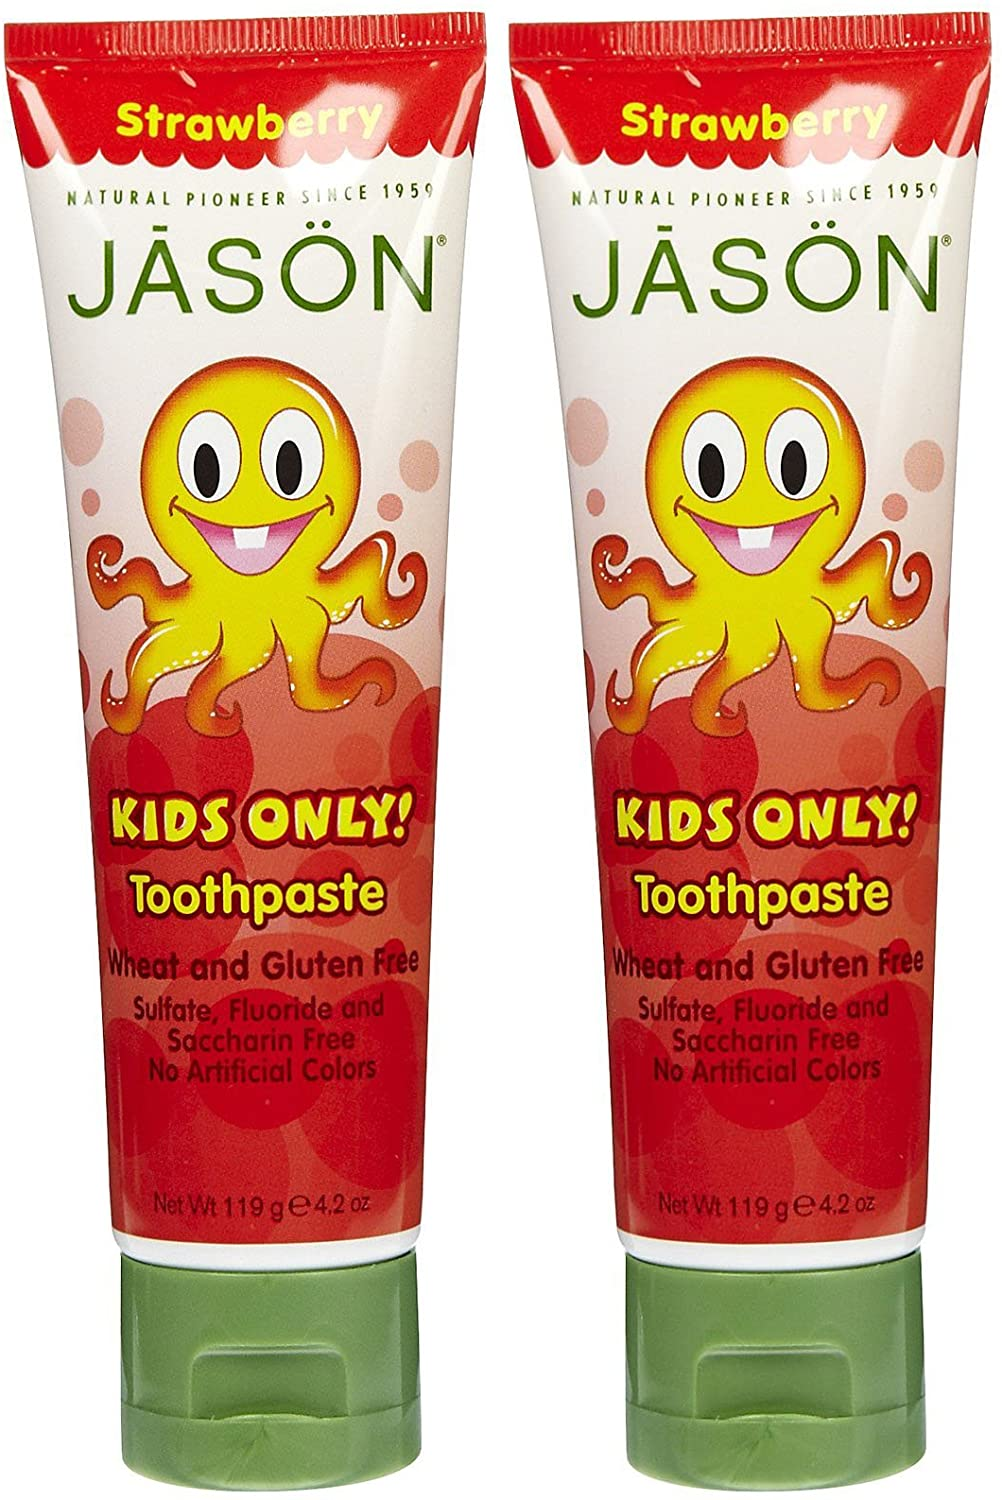 Jason Kids Only! Toothpaste with Calcium Carbonate, Strawberry - 4.2 oz - 2 pk